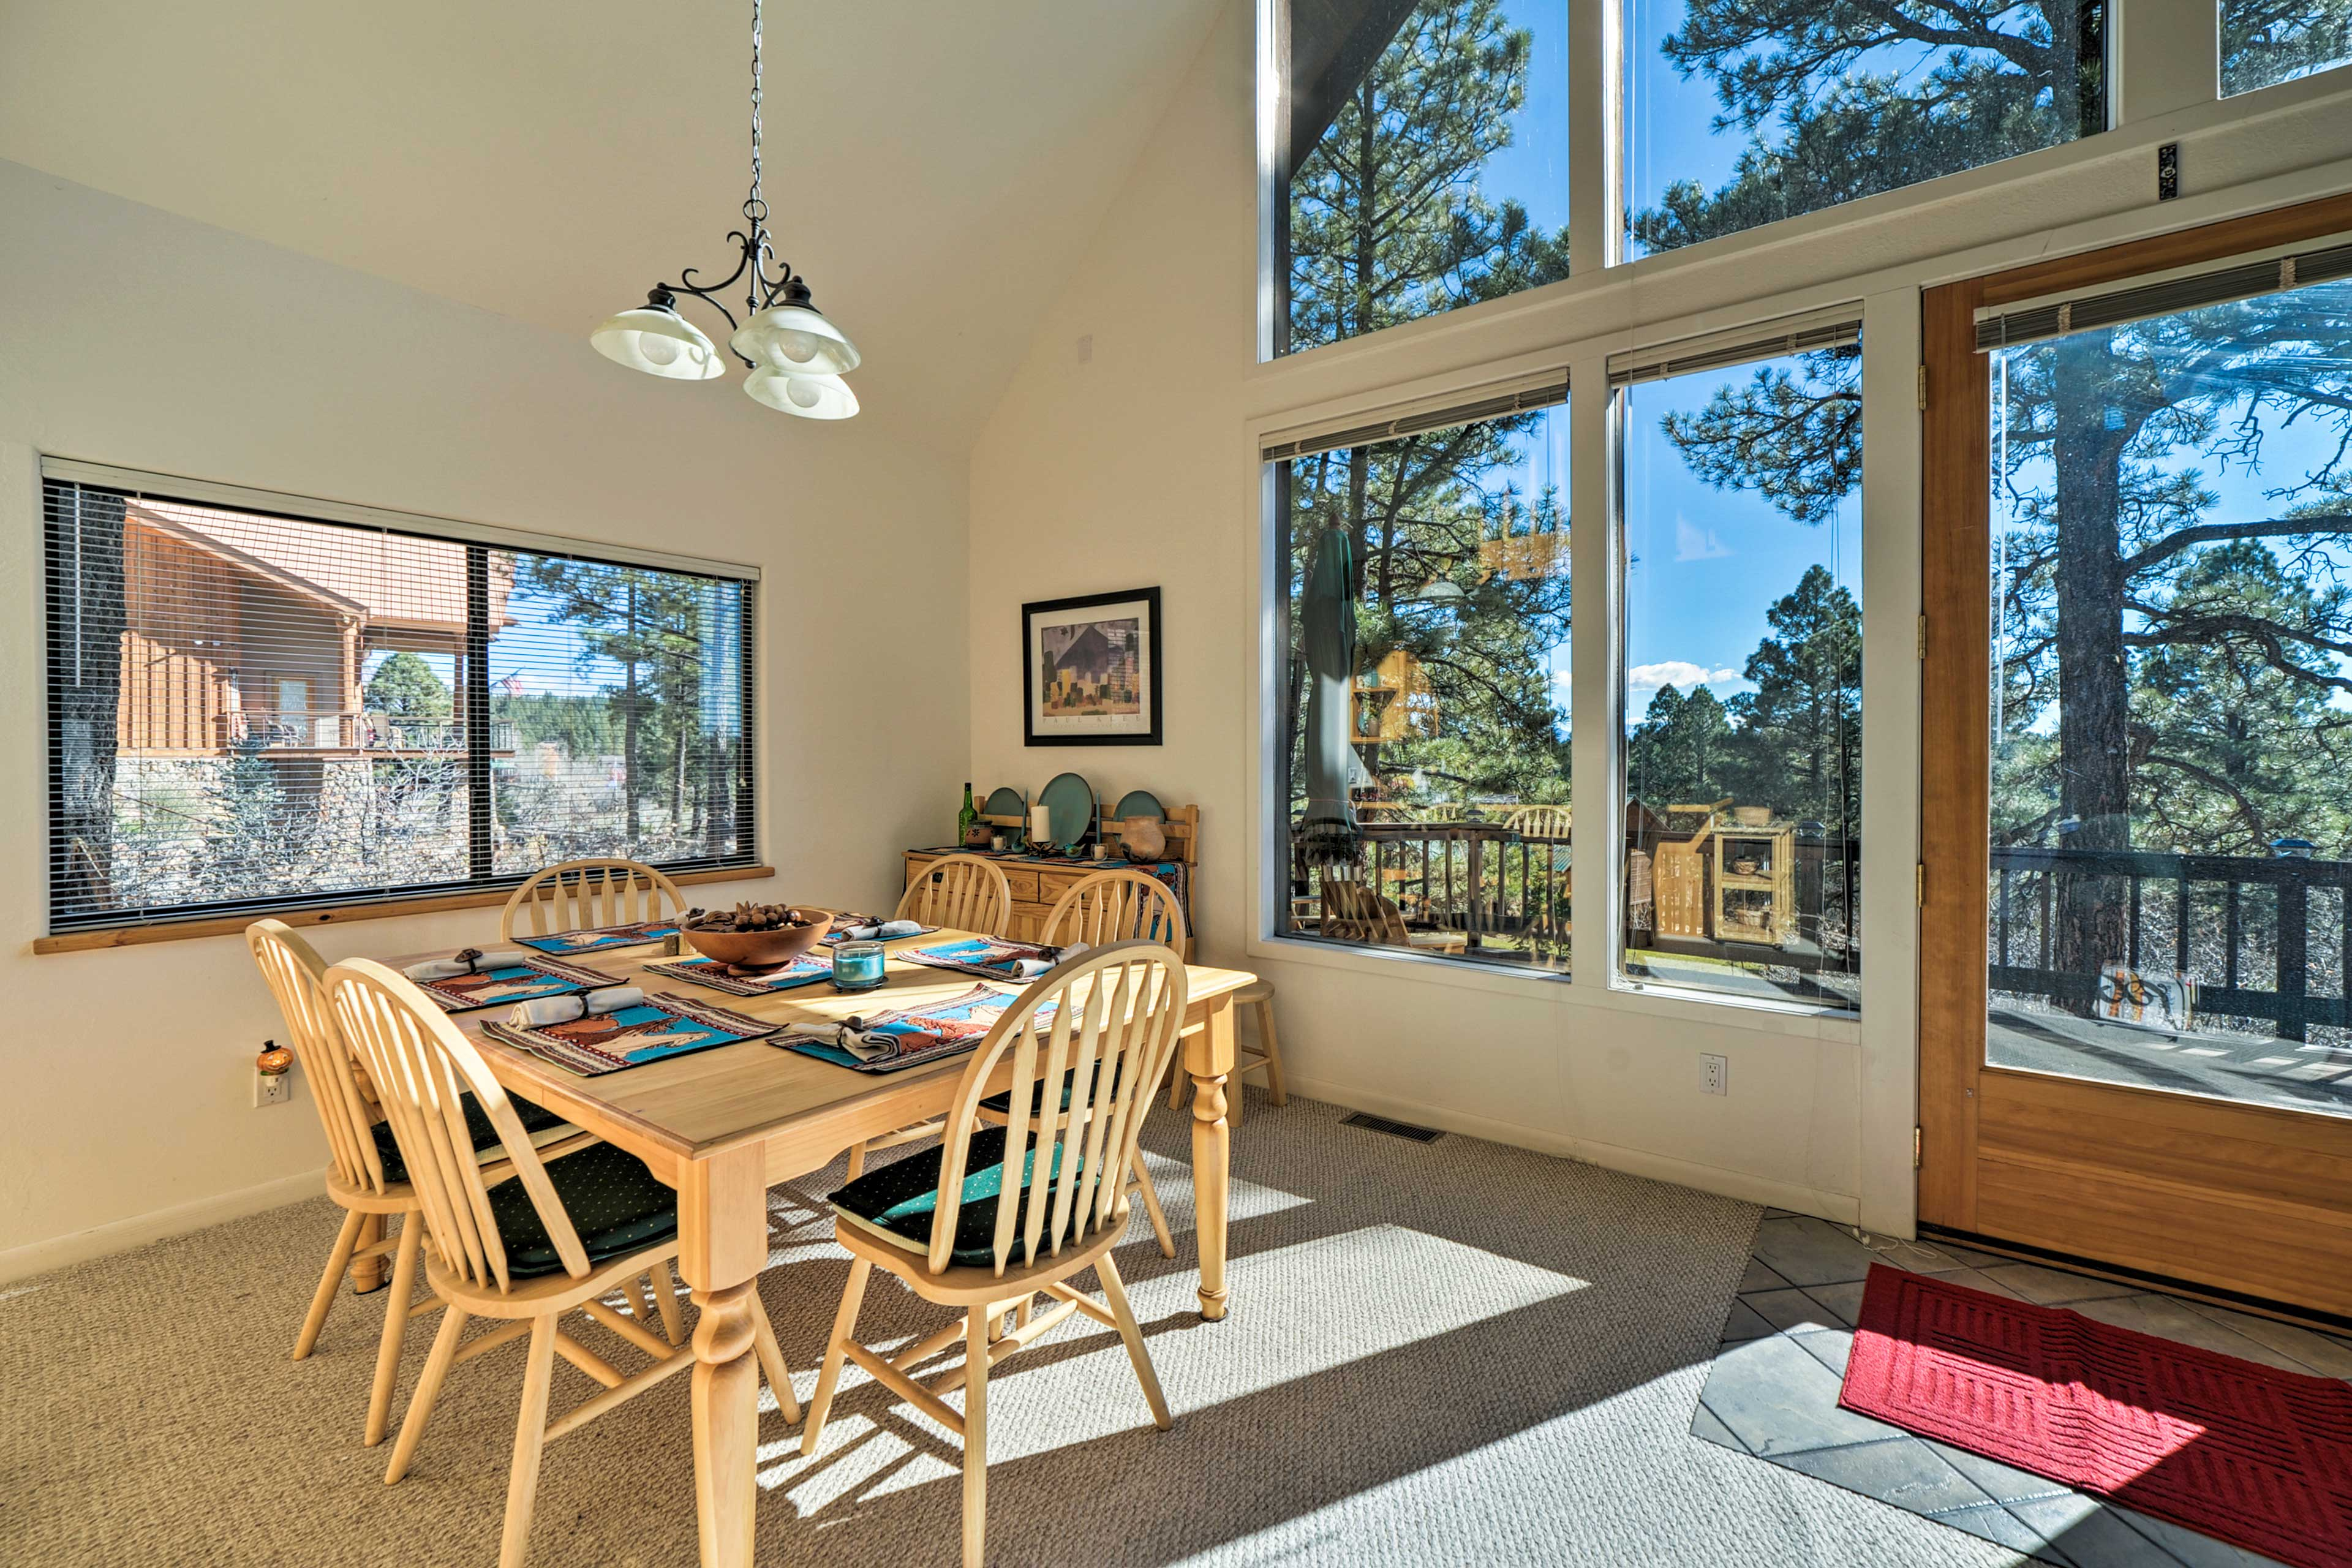 The home is surrounded by towering pine trees.